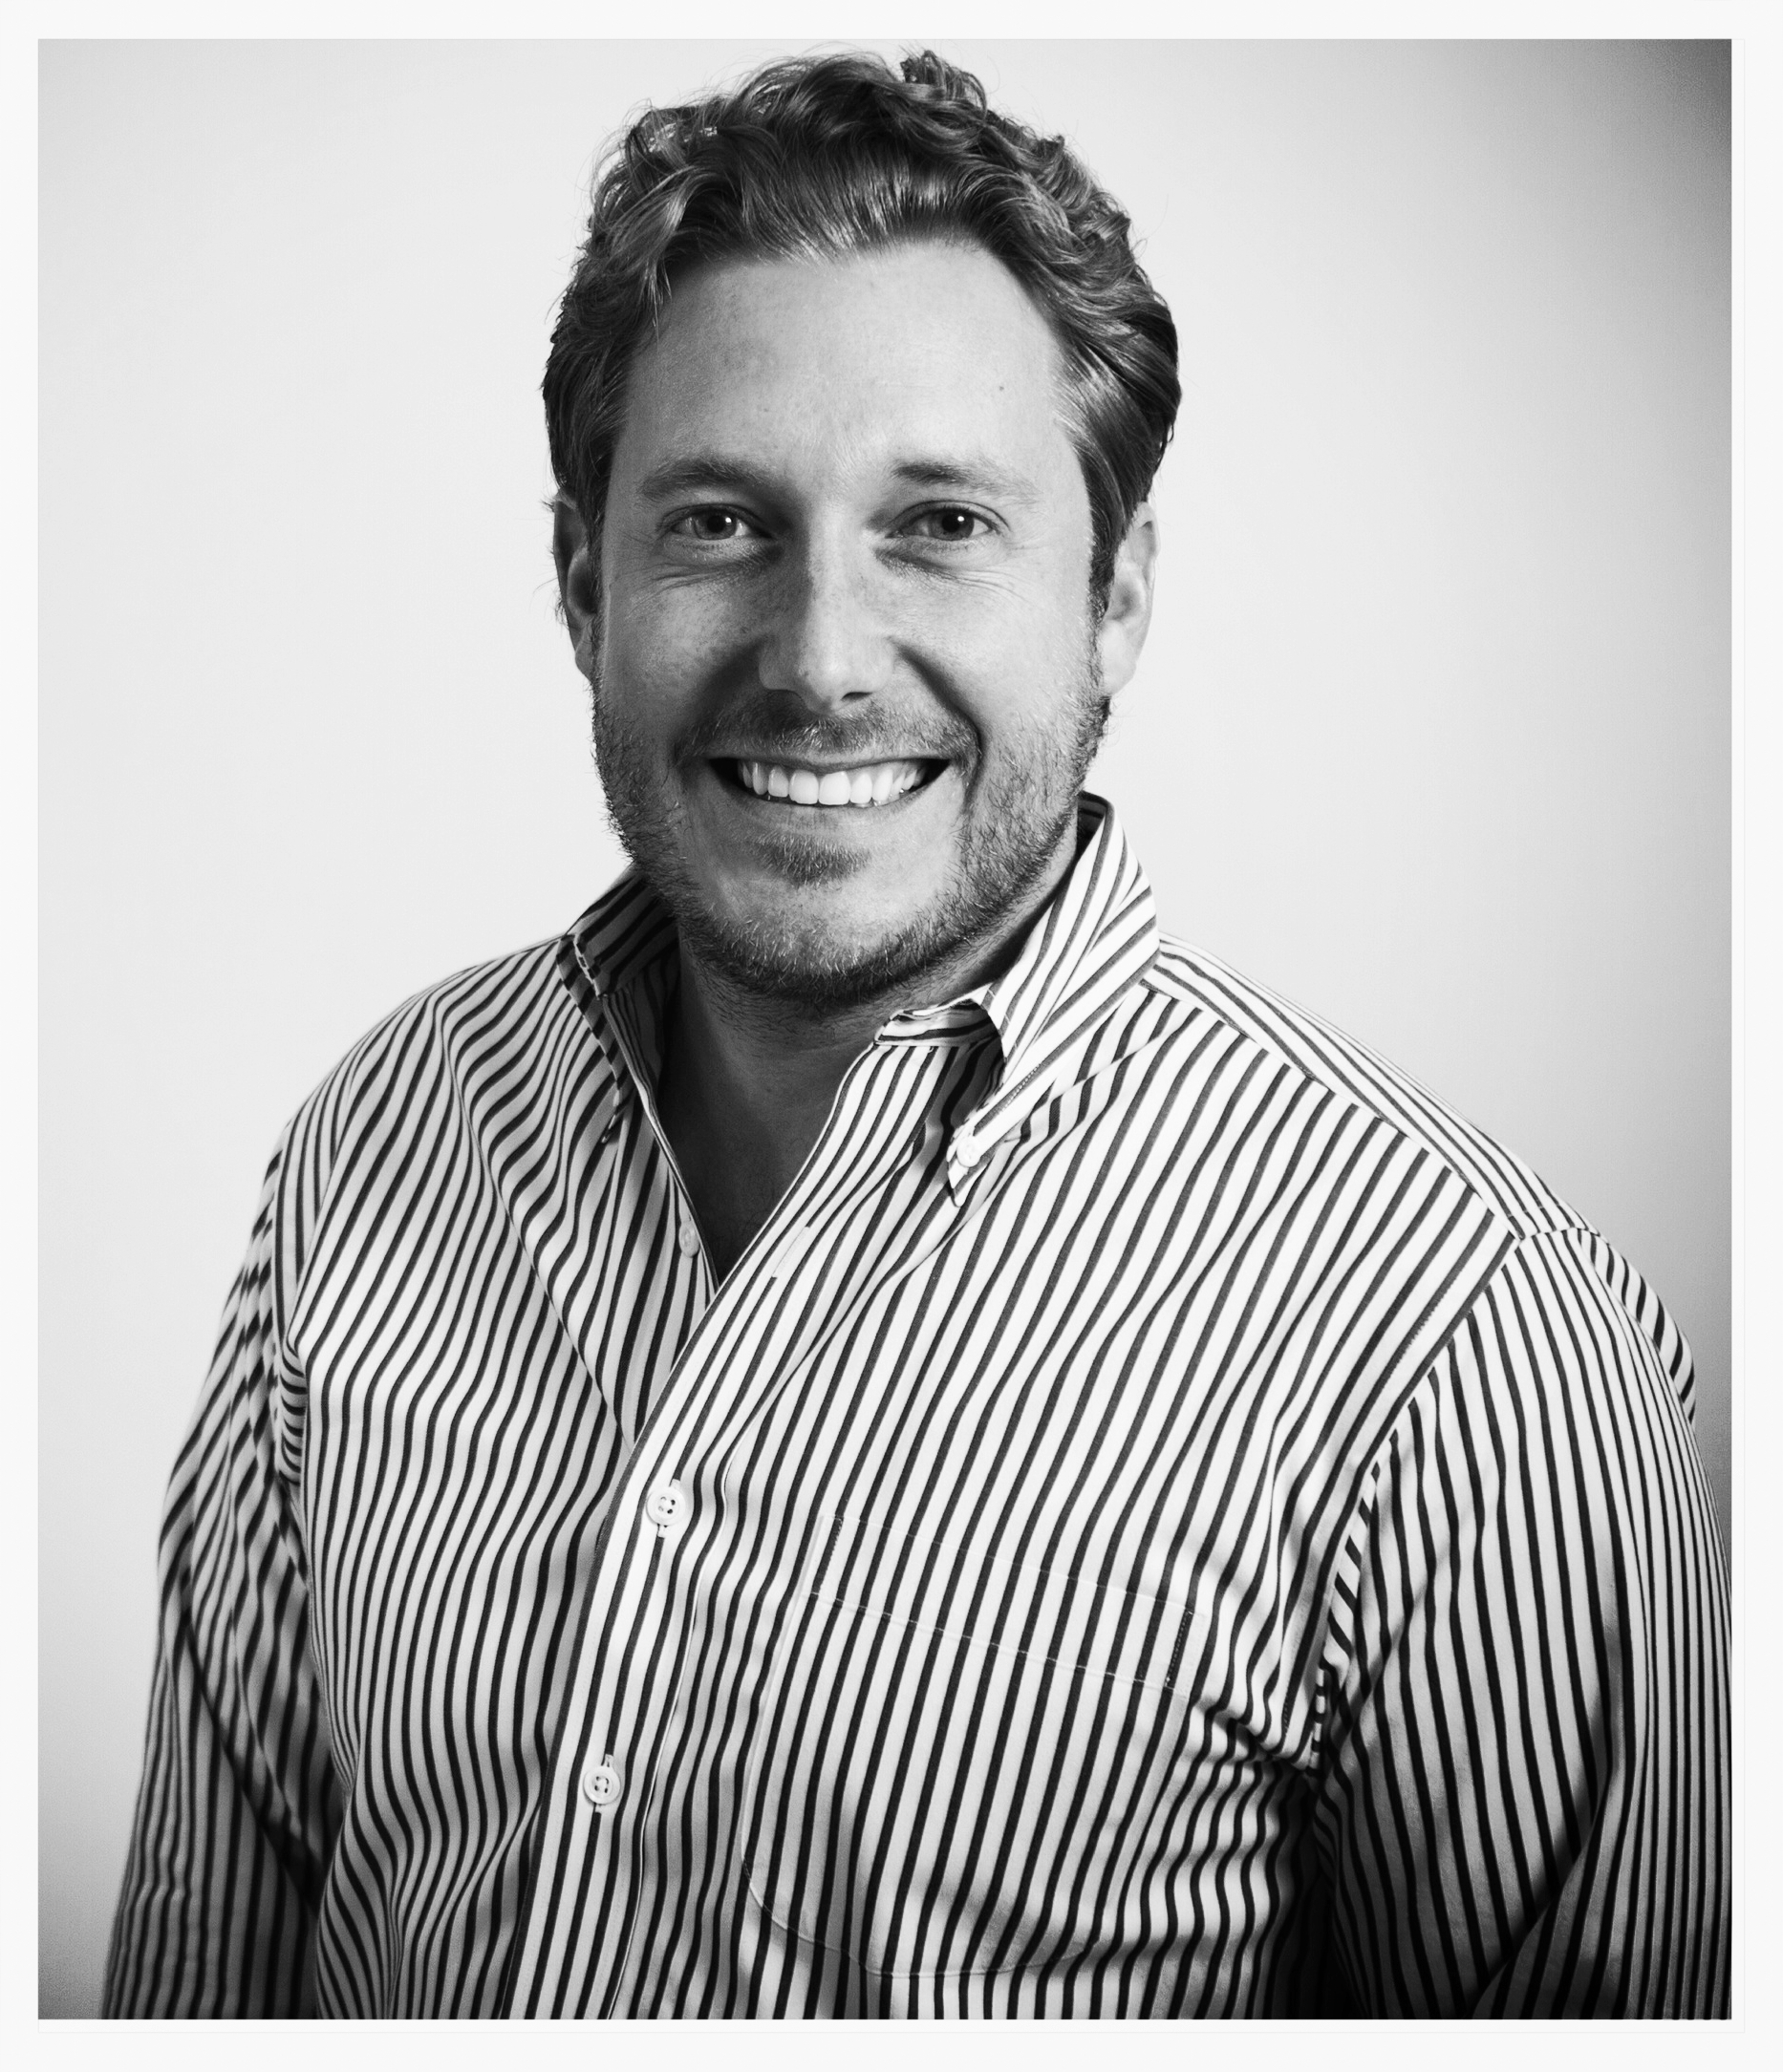 Brandon Kievit isFounder and Lead Sourcer of sailteam. Together with his team, they deliver results.